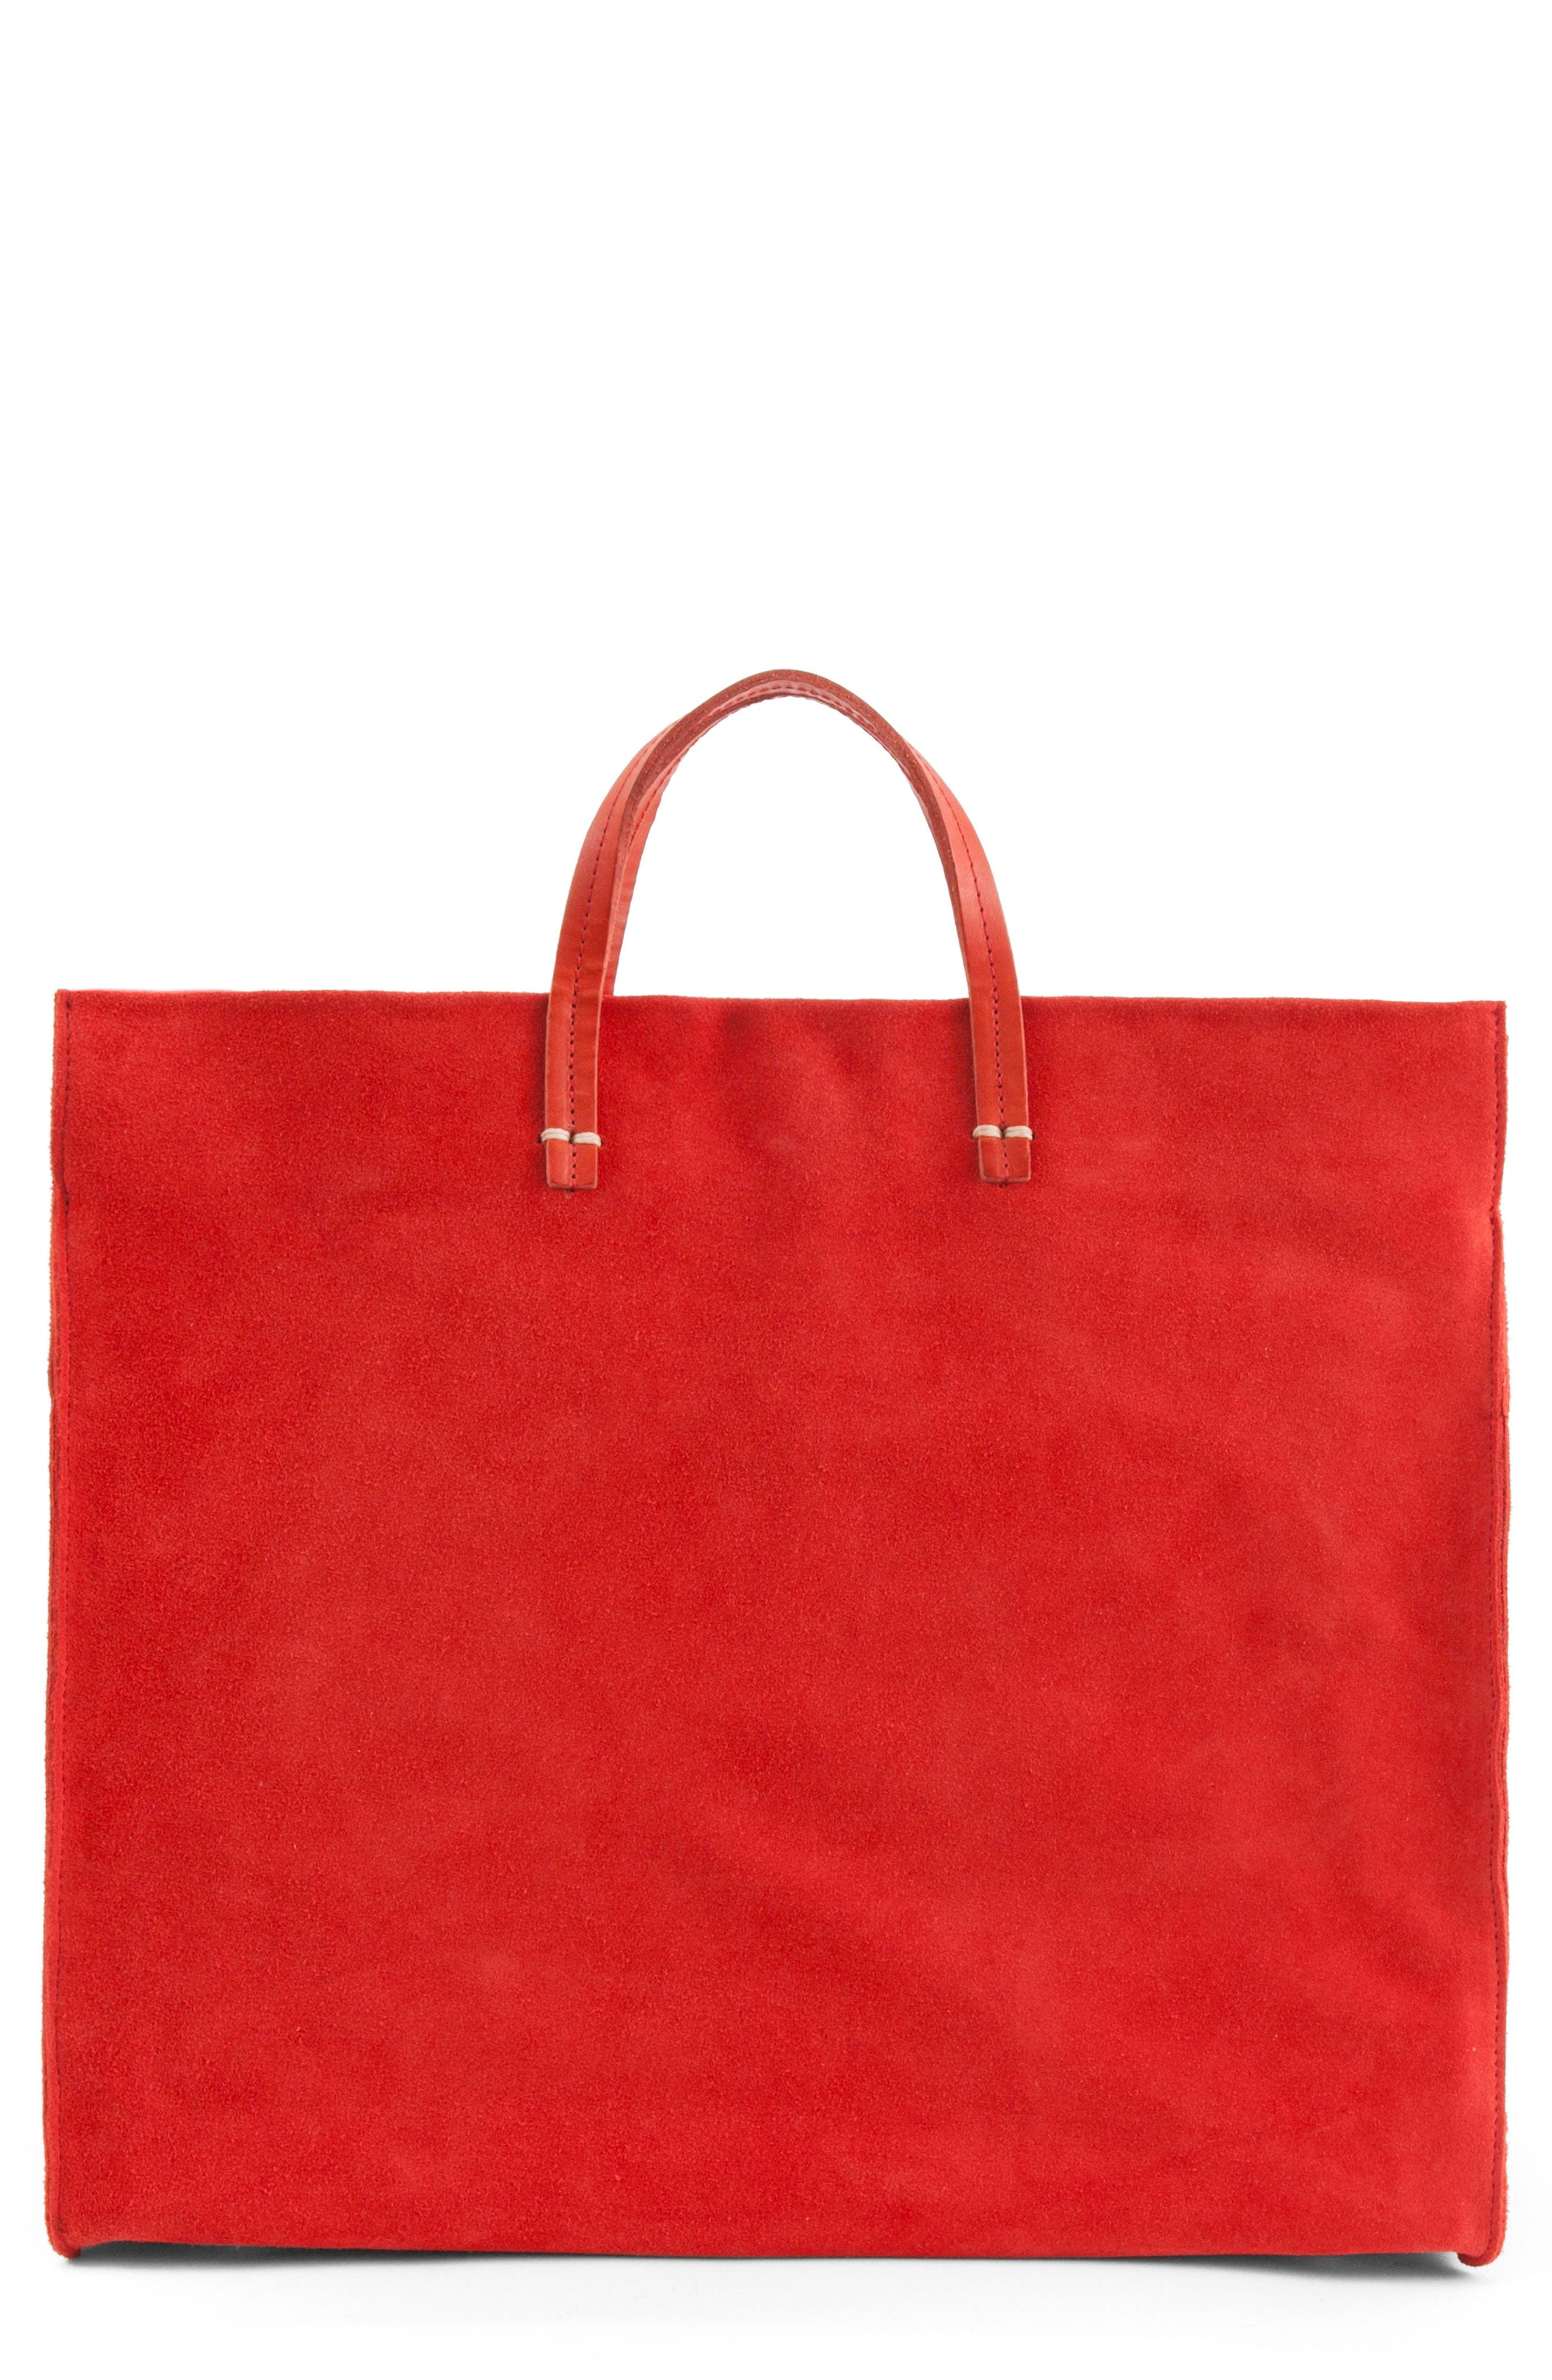 Alternate Image 1 Selected - Clare V. Maison Simple Suede Tote